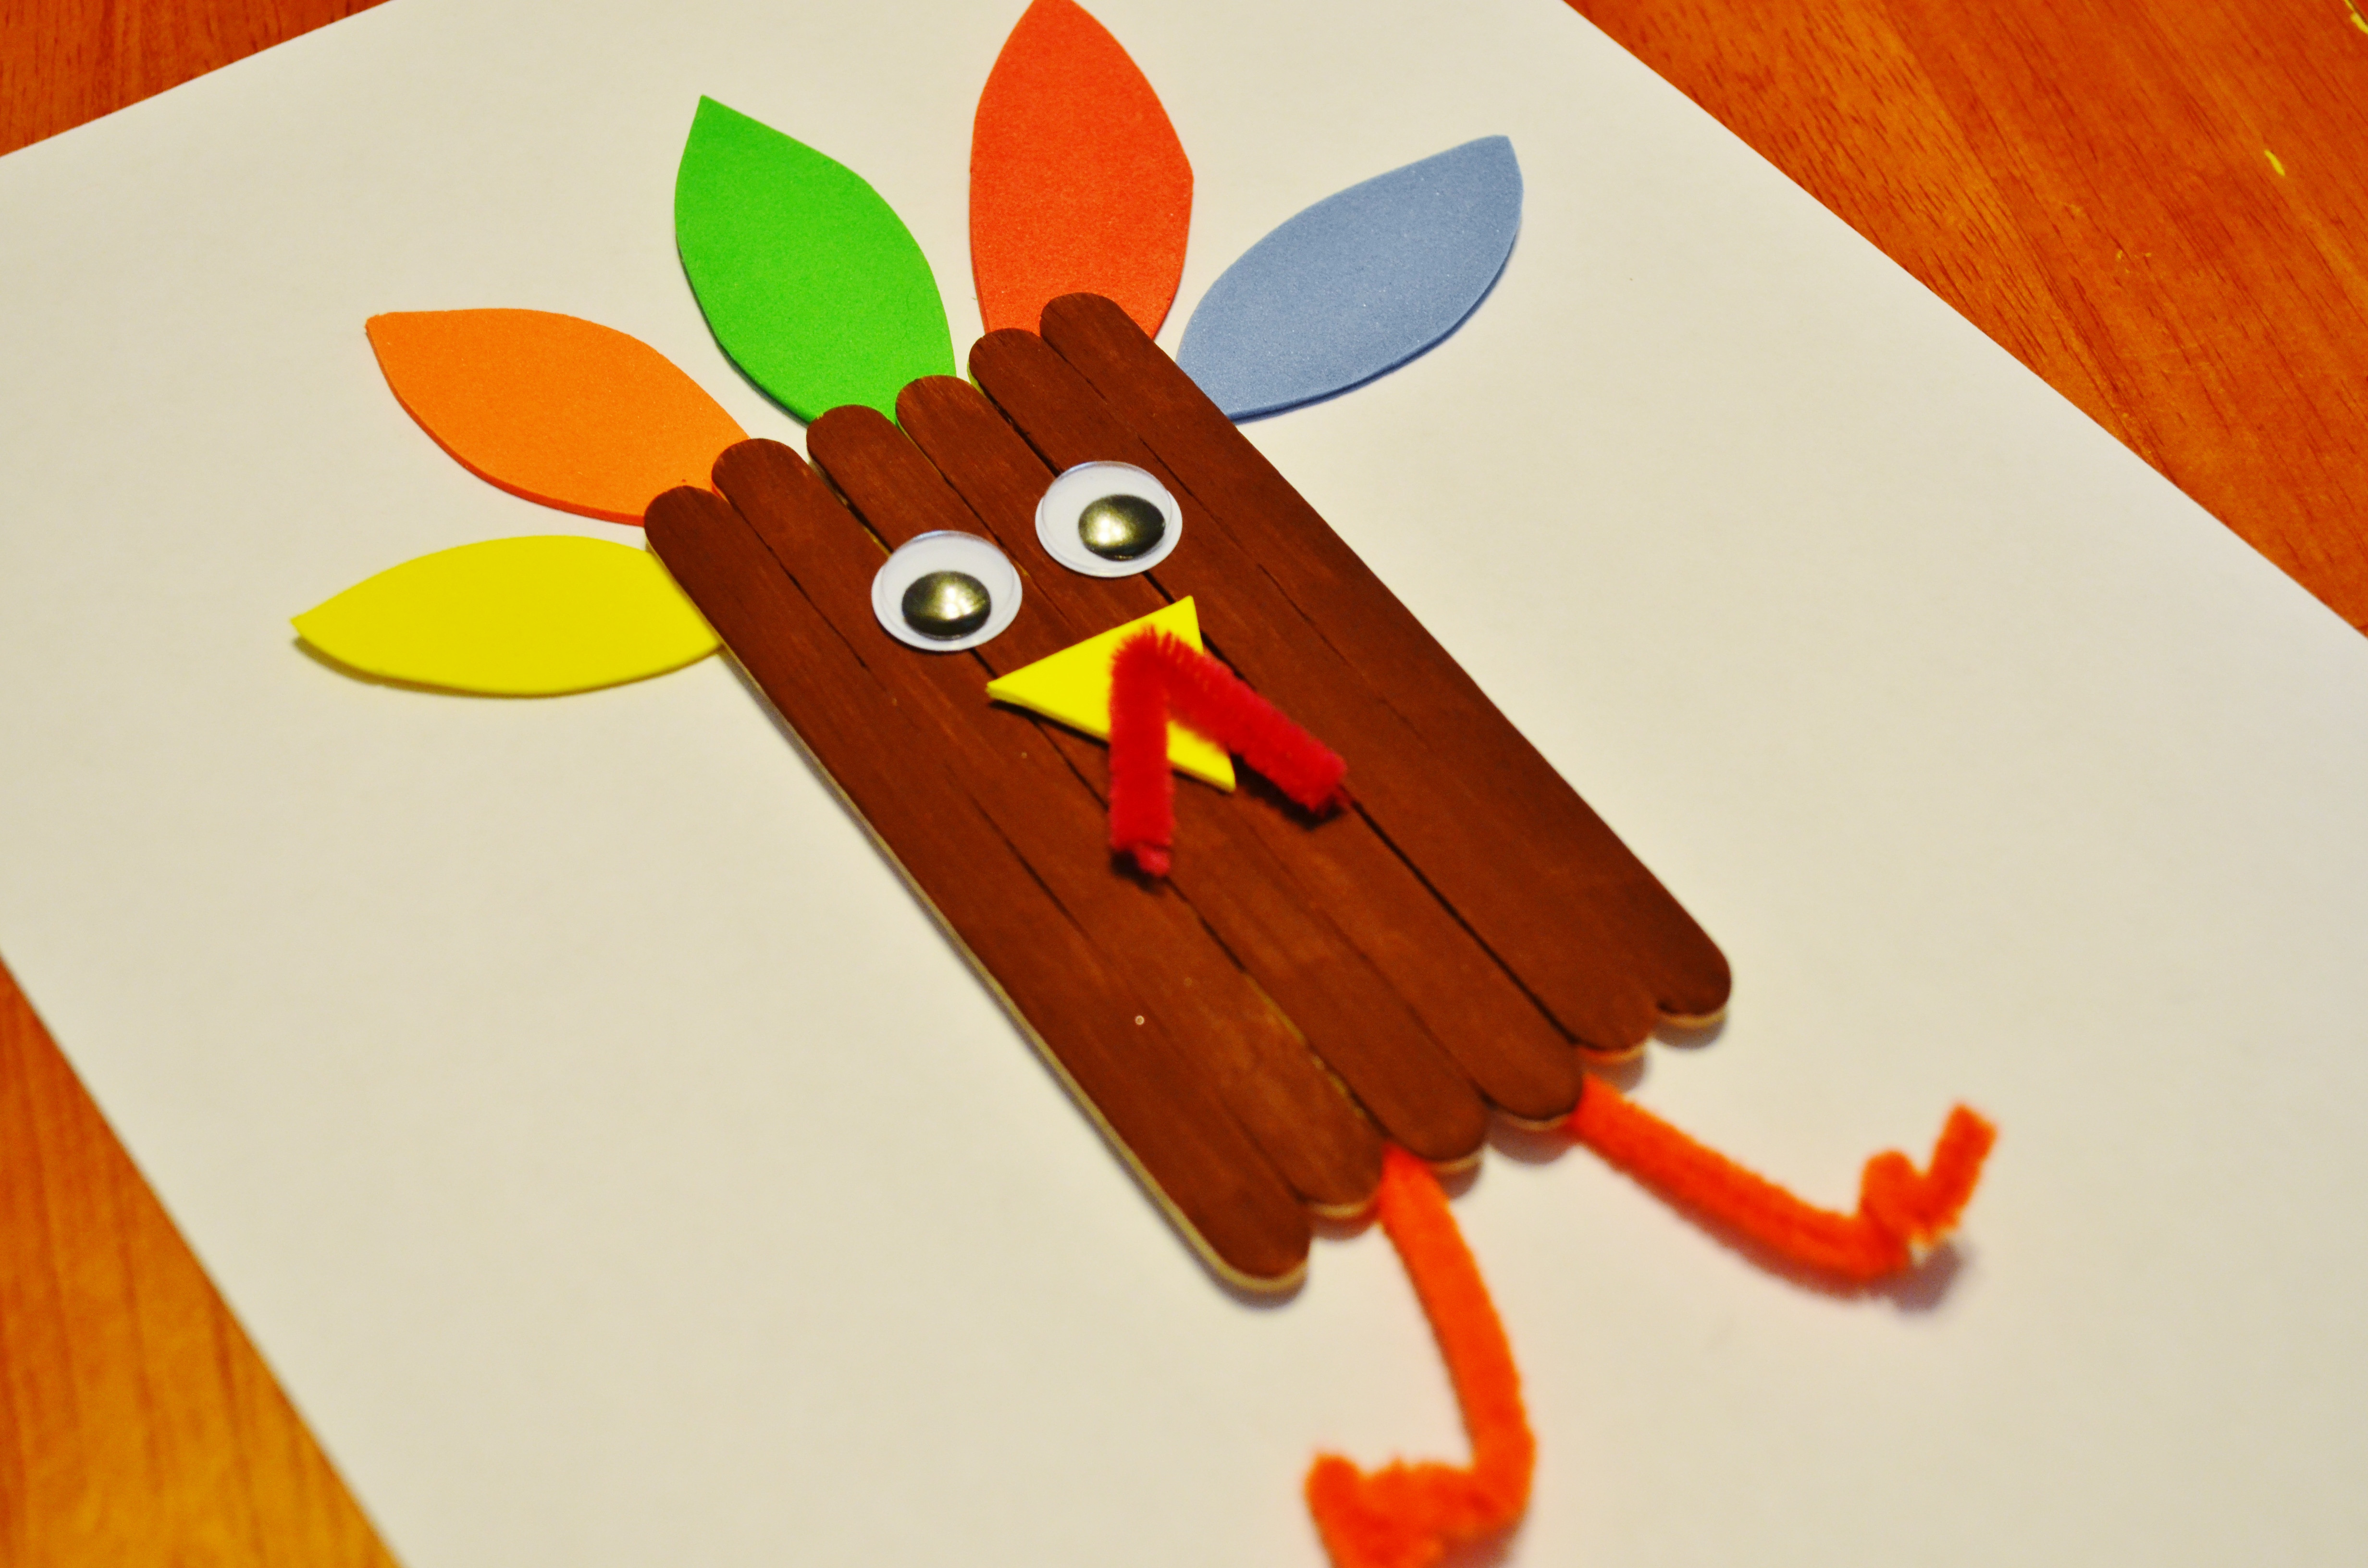 Best ideas about Thanksgiving Arts And Crafts For Kids . Save or Pin Thanksgiving Turkey Craft Sticks Craft for Kids Now.